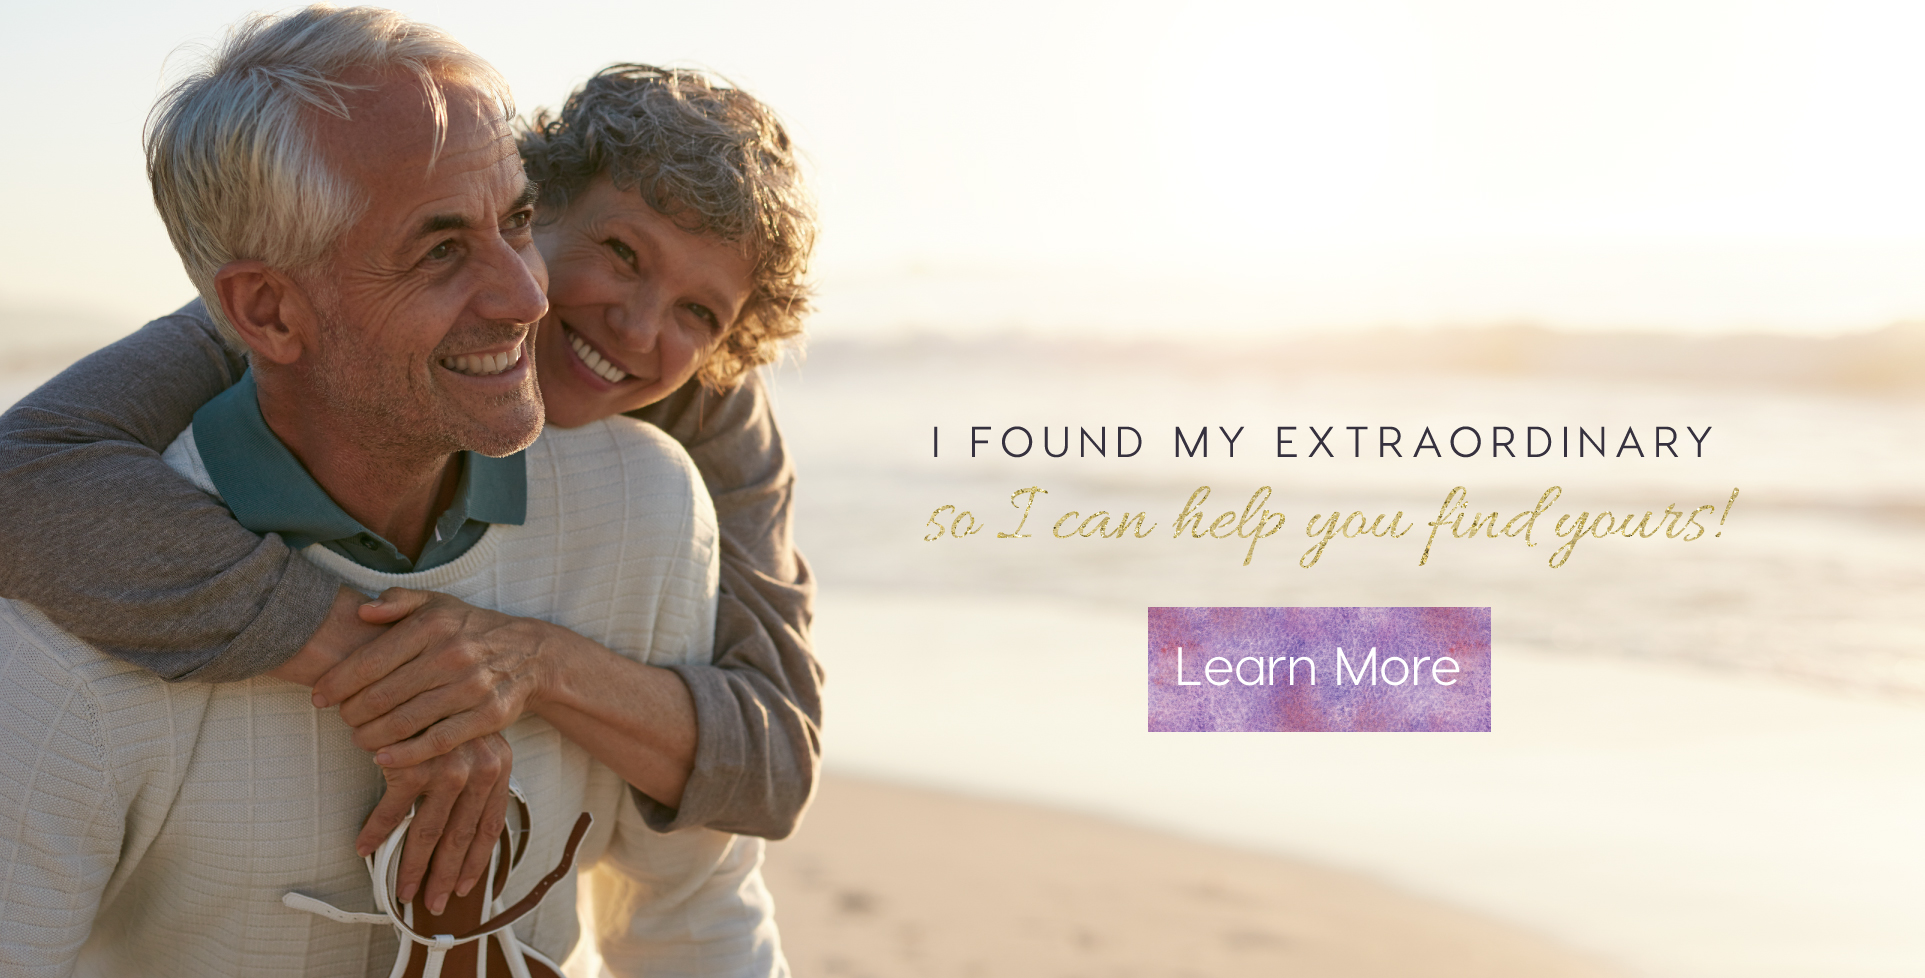 I found my extraordinary with Renewed Living